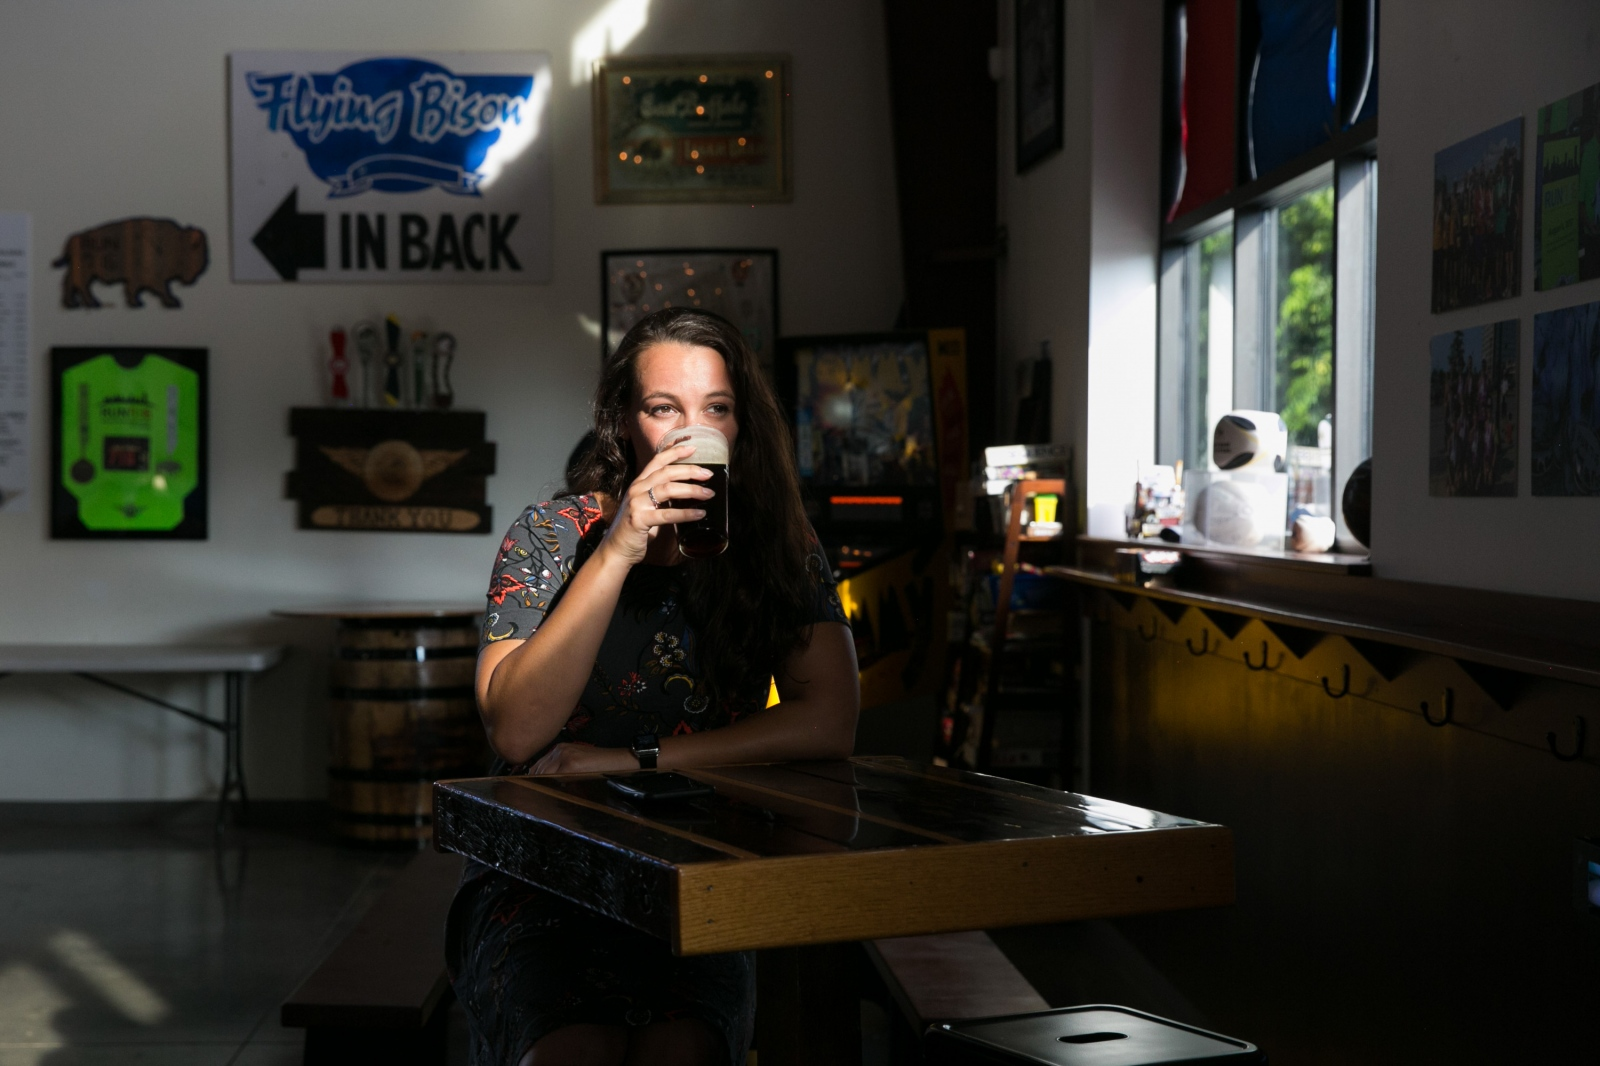 Tim Herzog's niece Jessica Yogel relaxes and drinks beer in Flying Bison in Buffalo, N.Y.